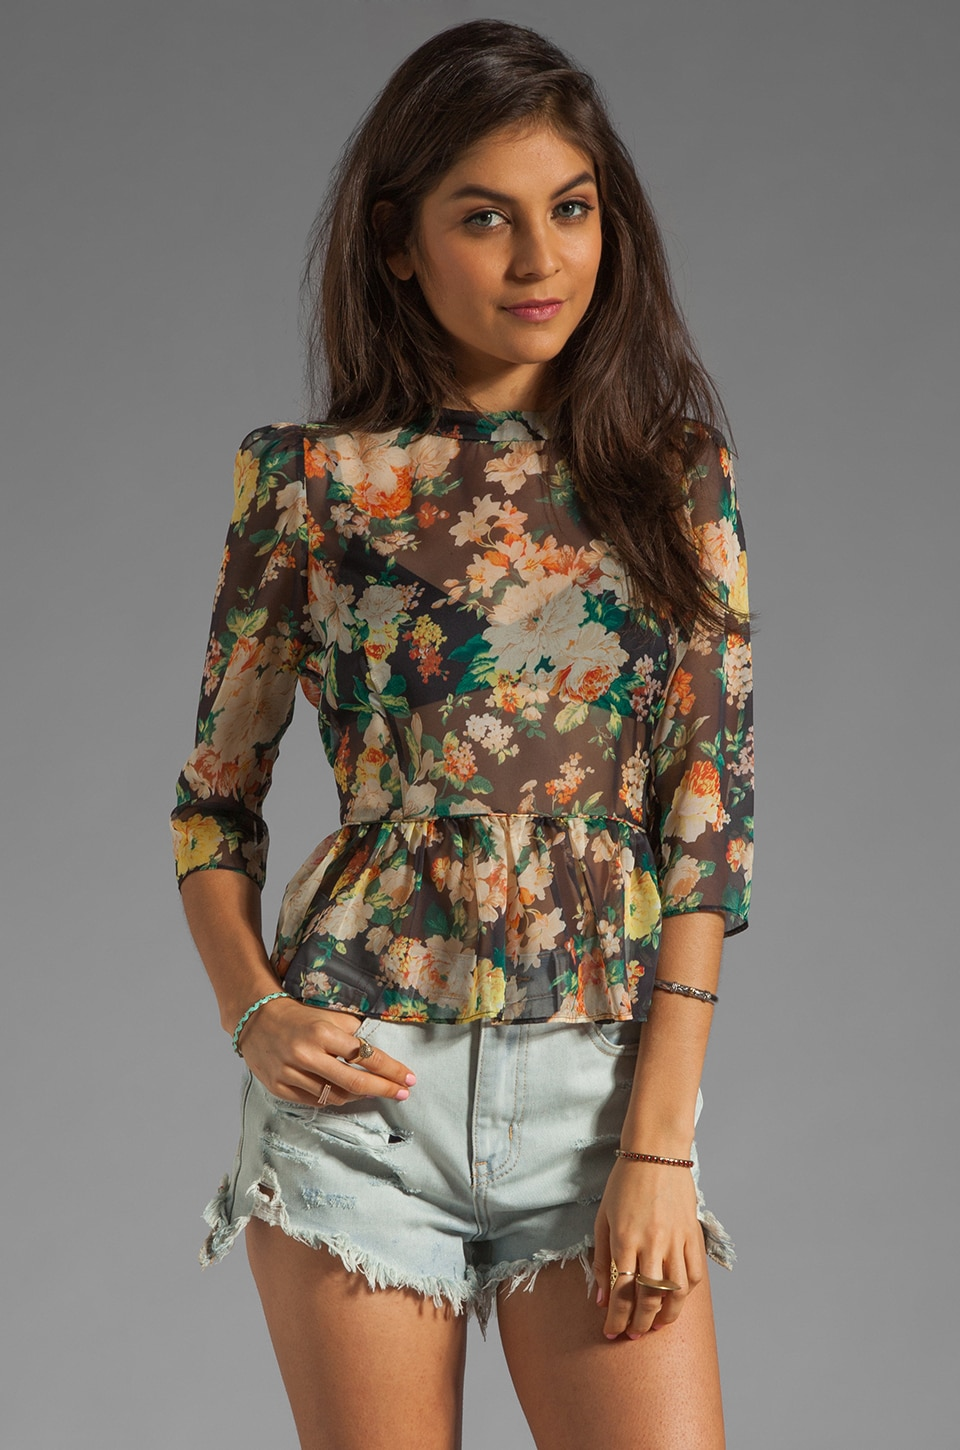 Dolce Vita Ceri Blouse in Black Floral